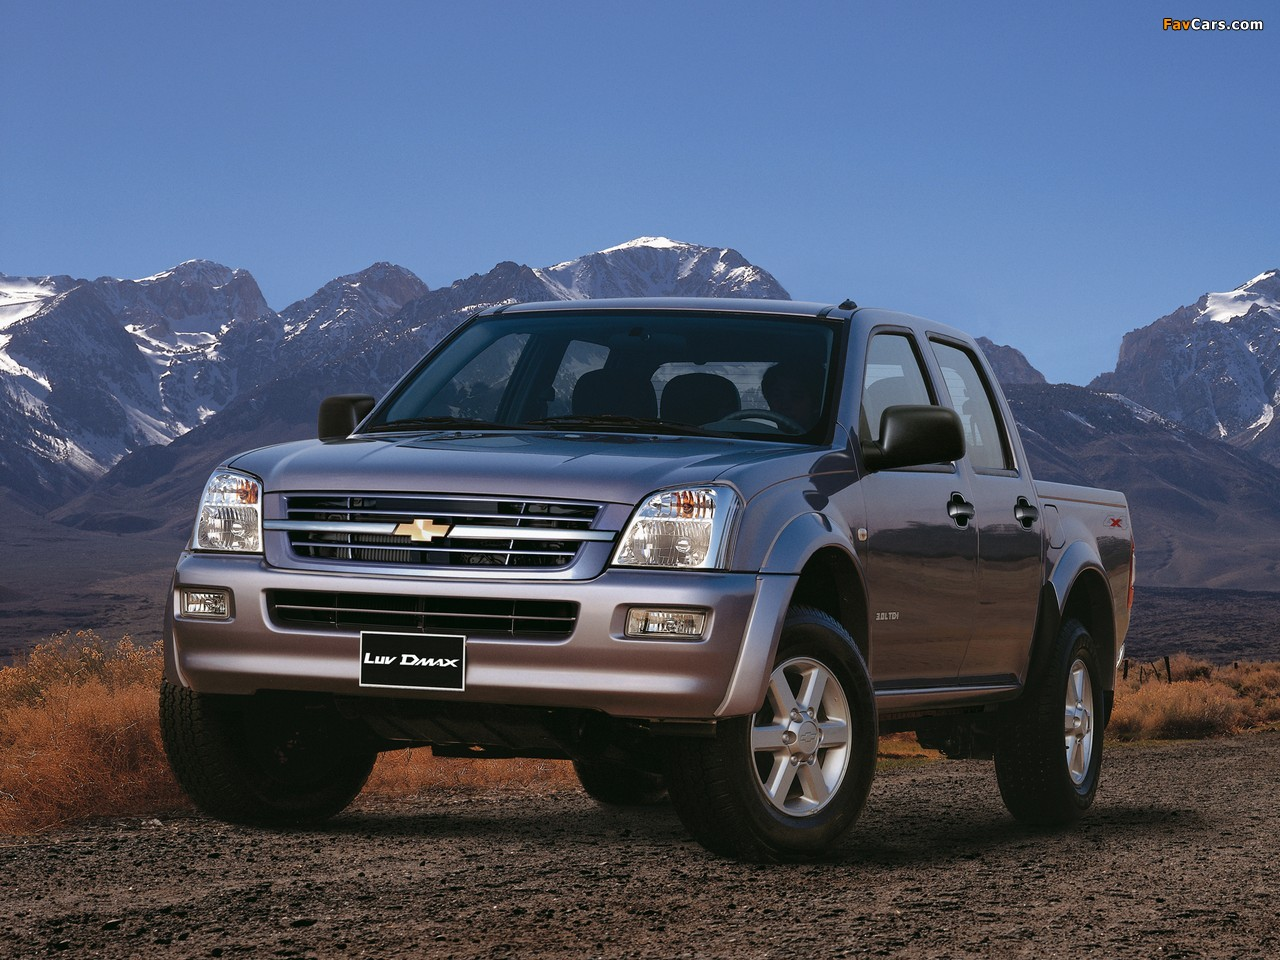 Photos of chevrolet luv d max 2005 06